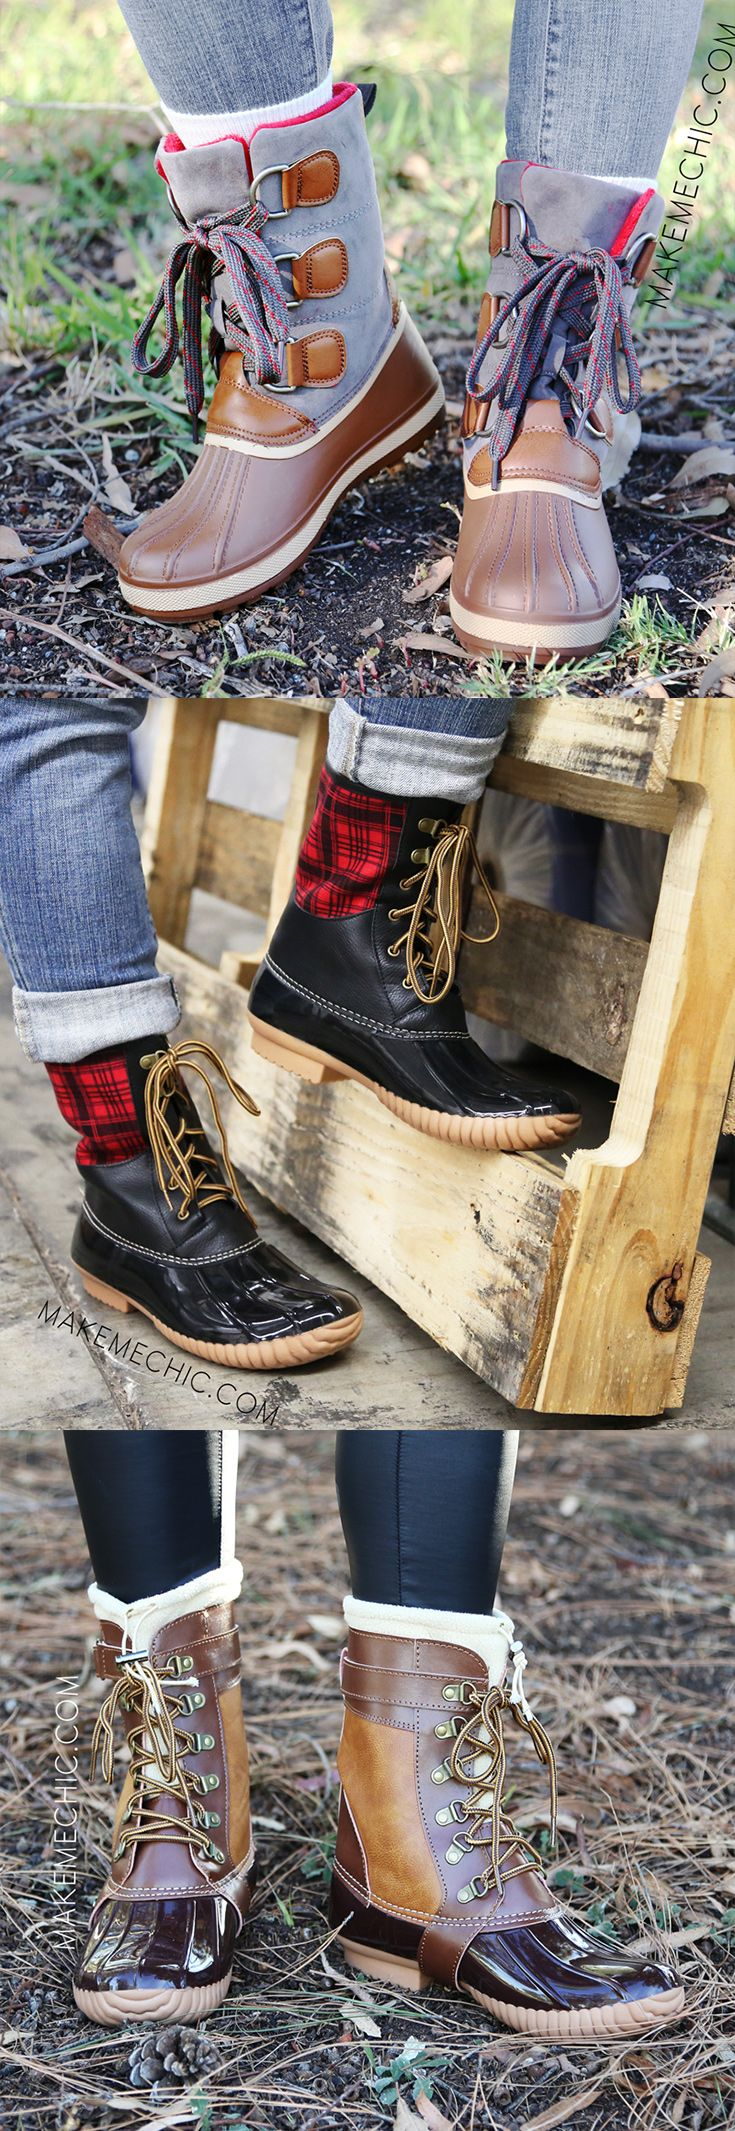 Bamboo Blizzard Chunky Buckle Duck Boots, $41